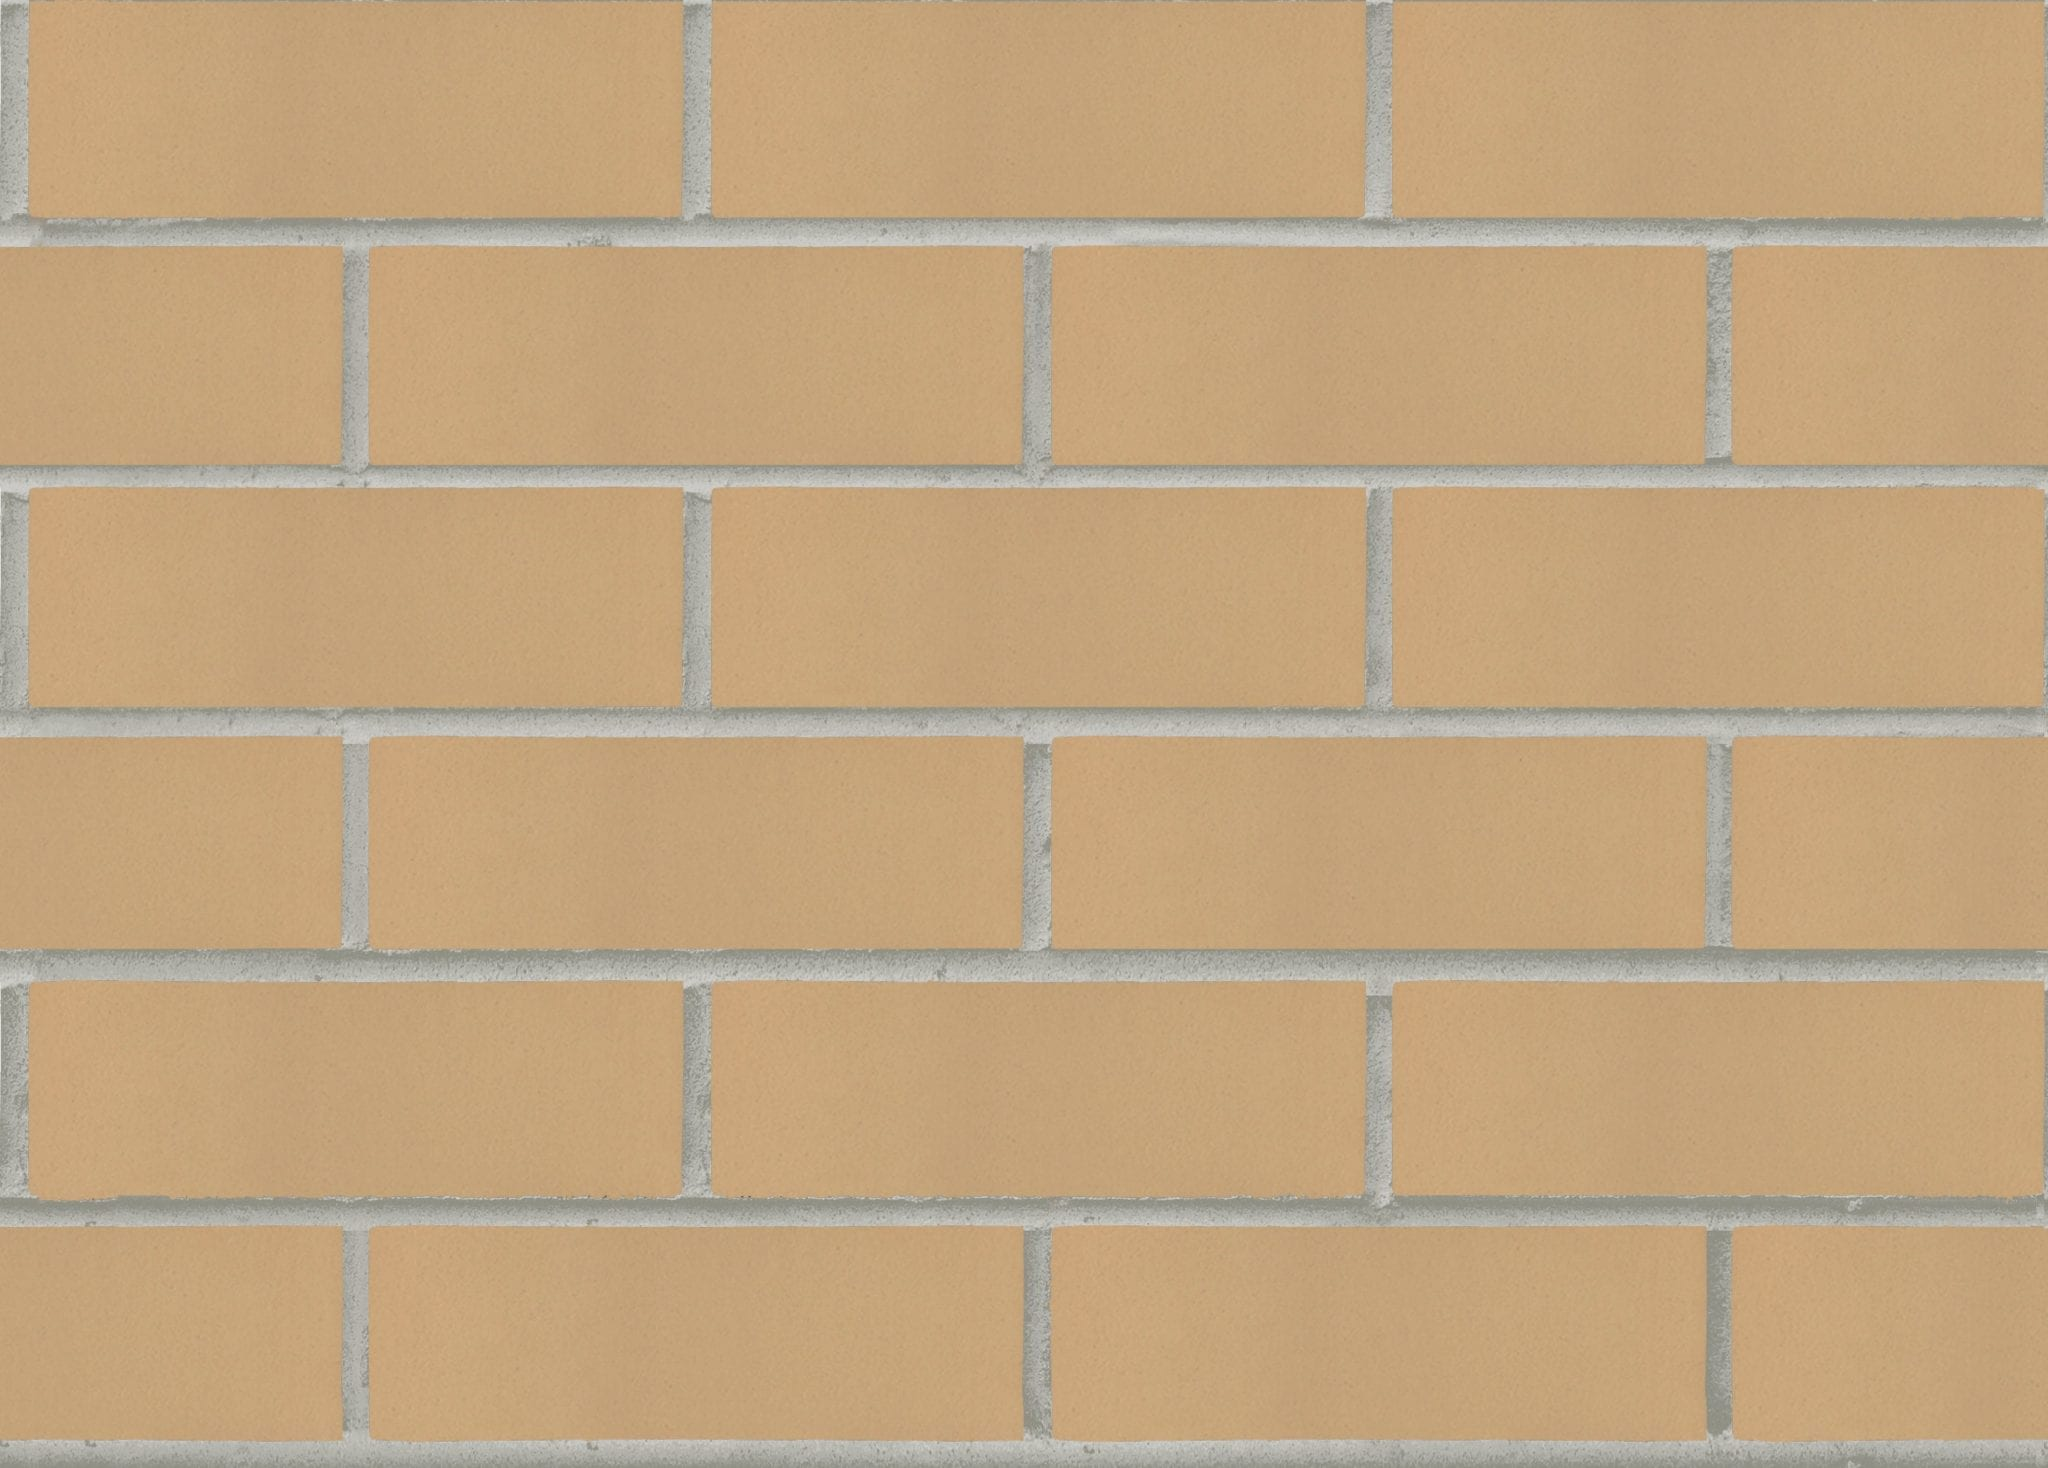 UltraSmoothLush230x76-110-240 - NSW Bricks